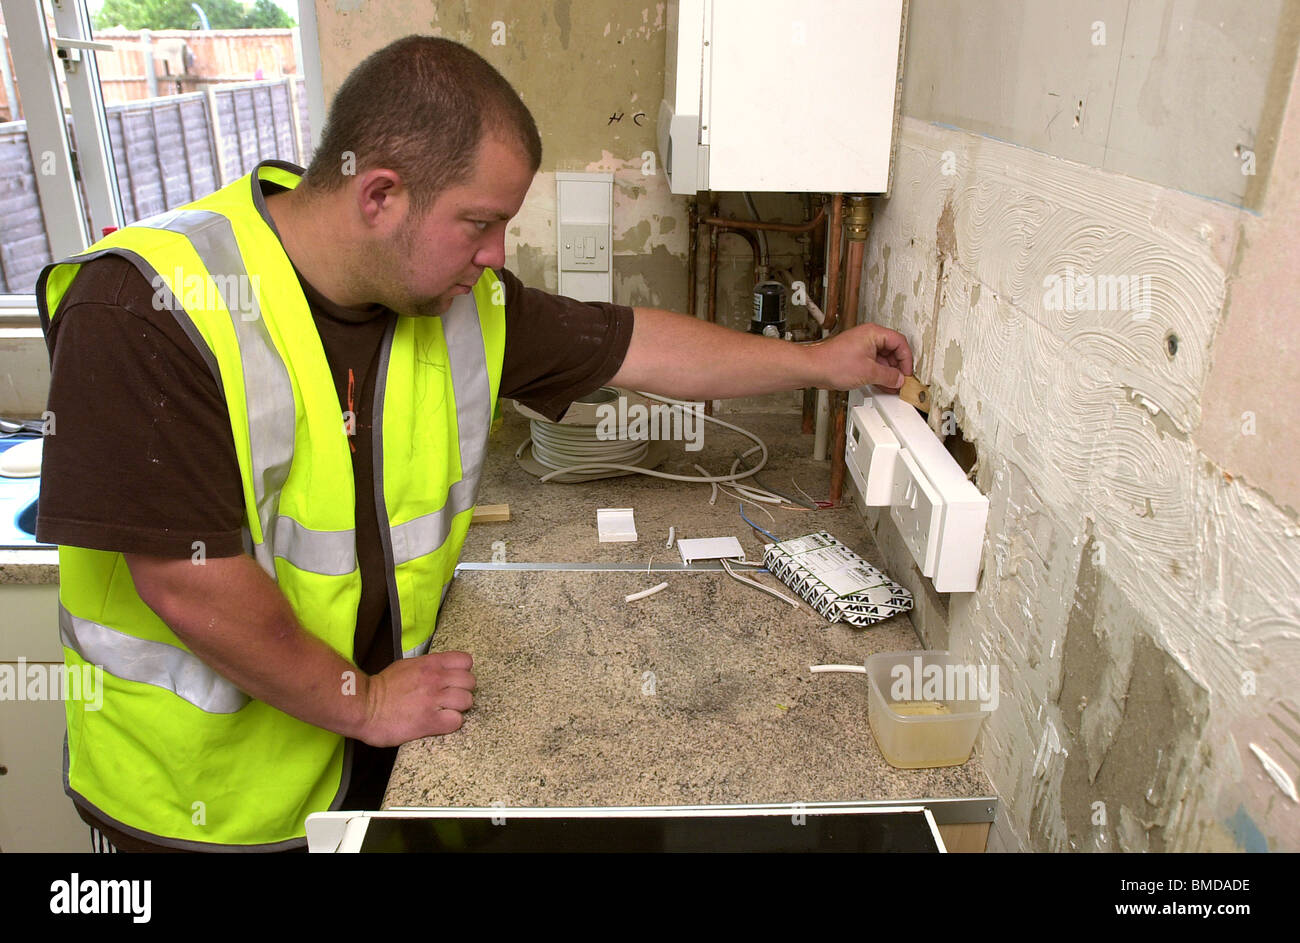 A workman fits electrical sockets in a housing association kitchen UK Stock Photo